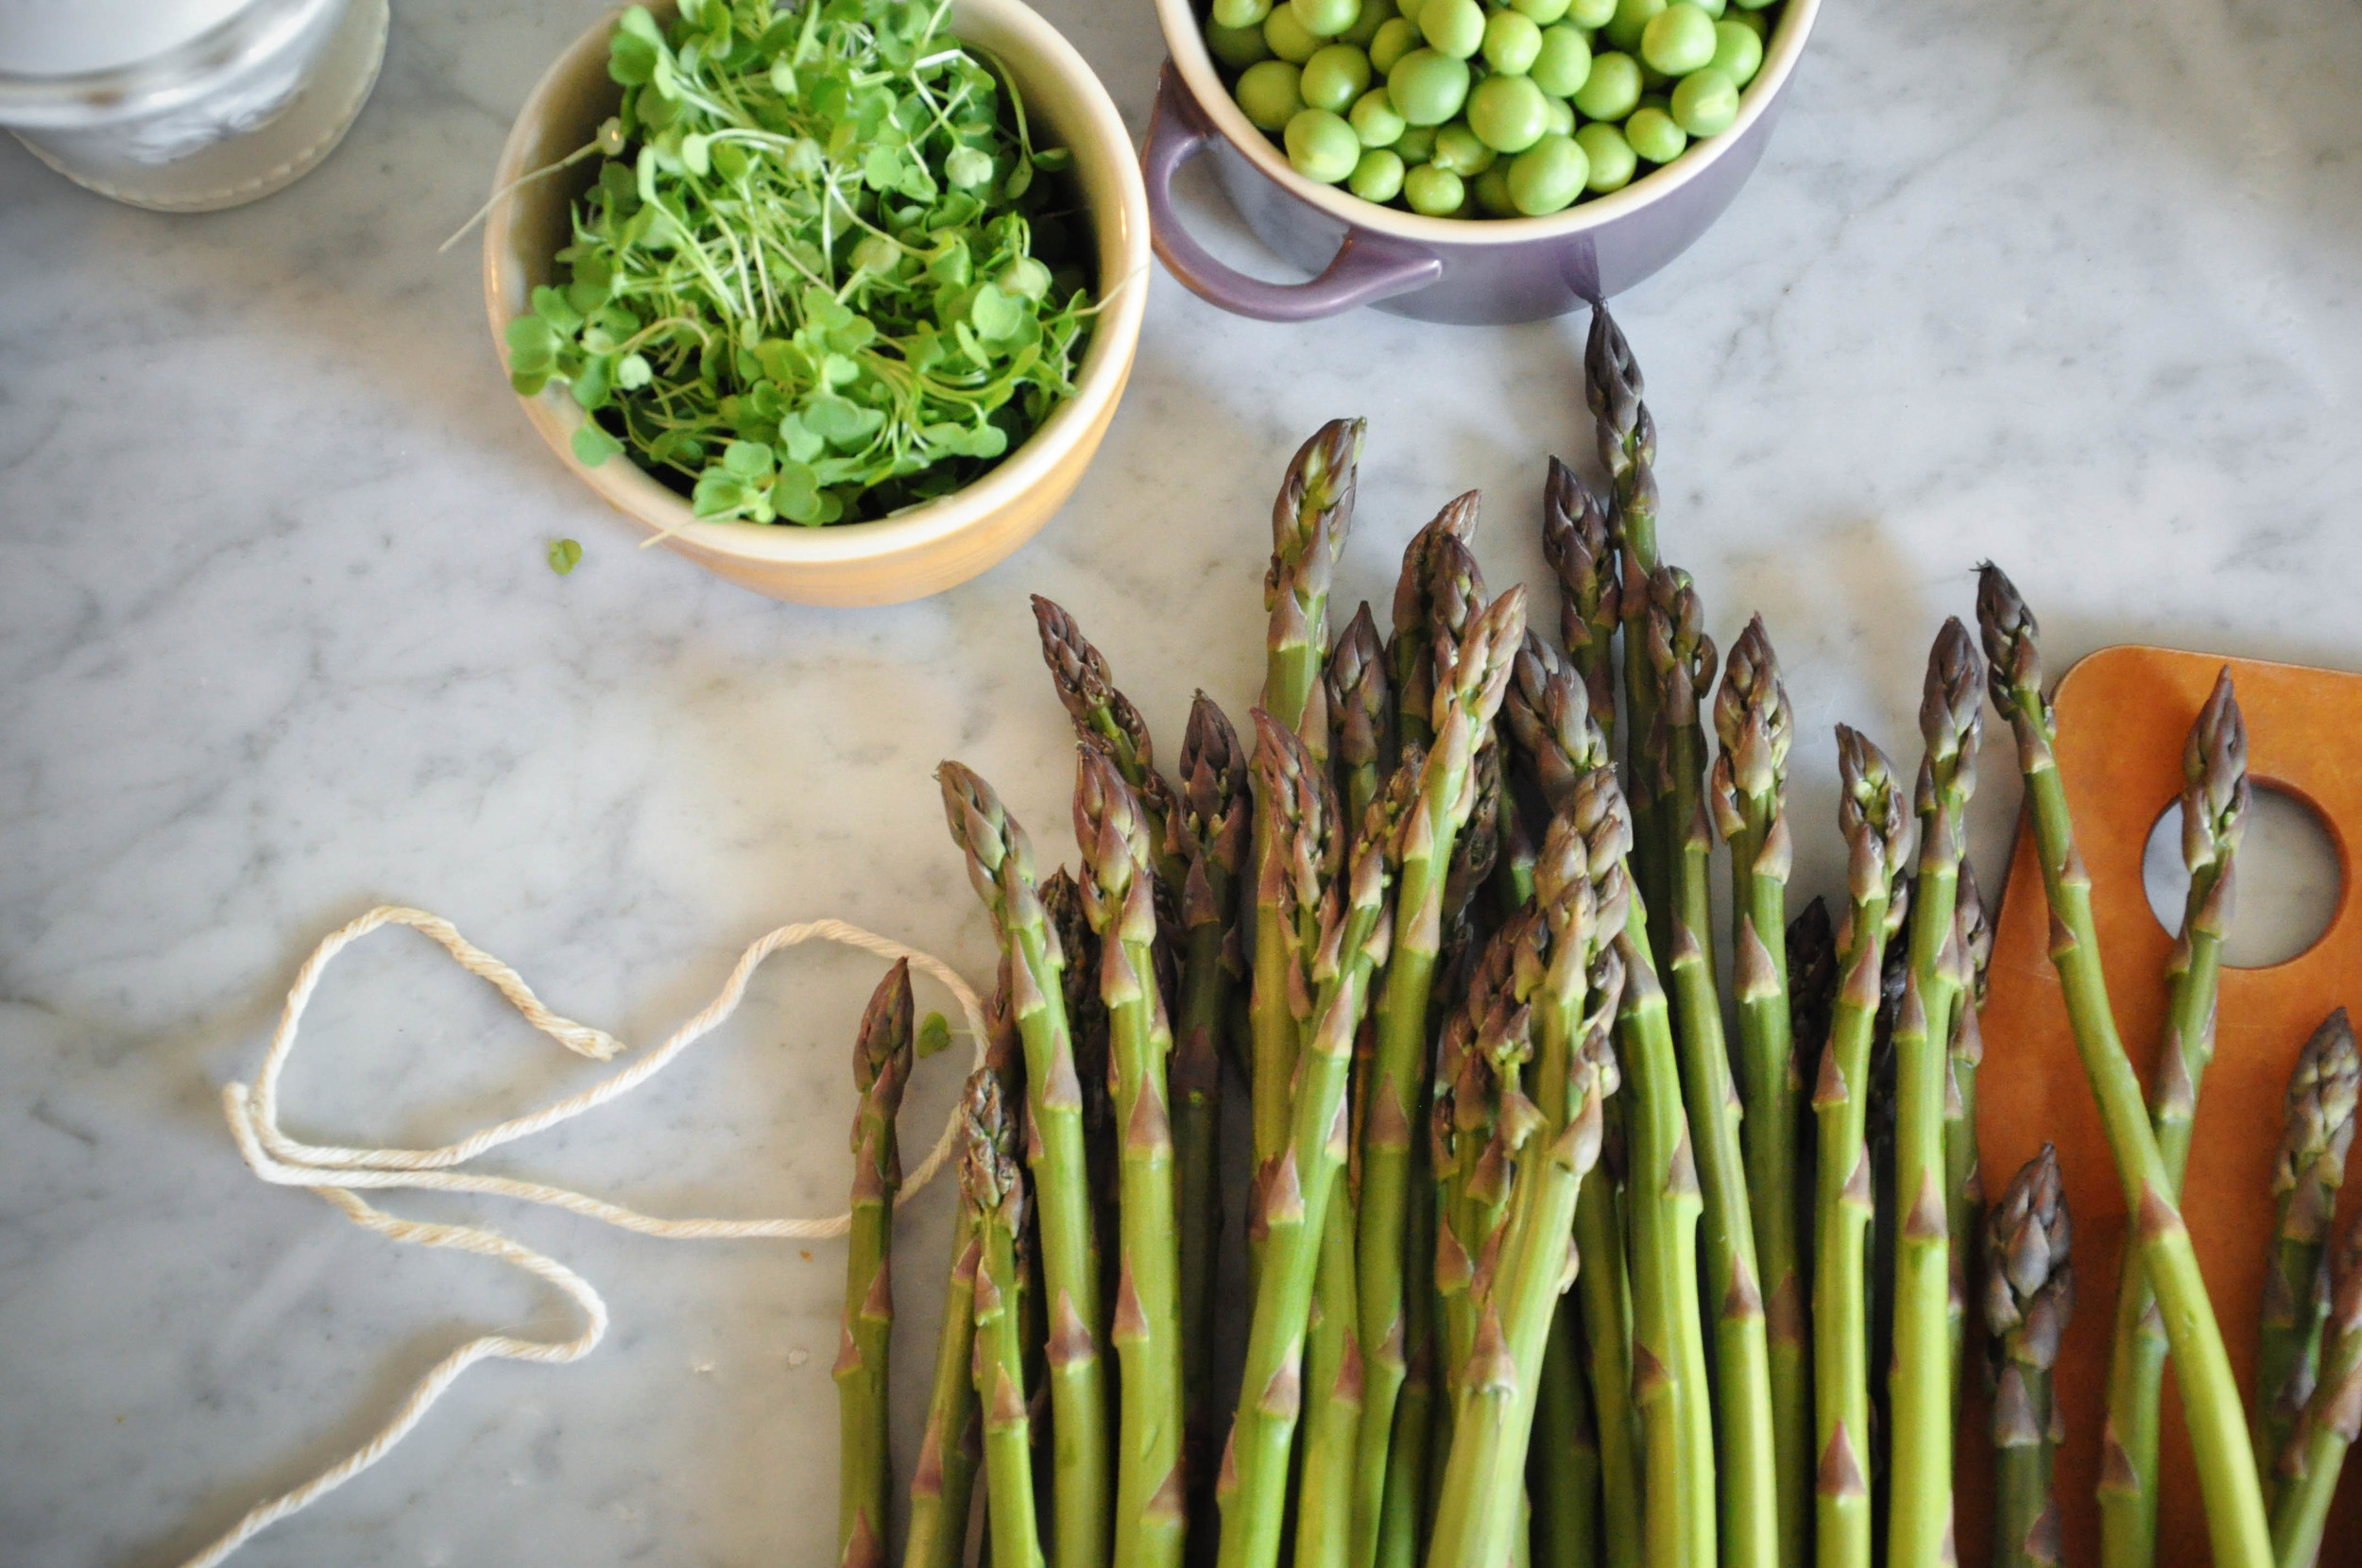 Spring Pea & Asparagus Salad with Crisped Ramps | O&O Eats